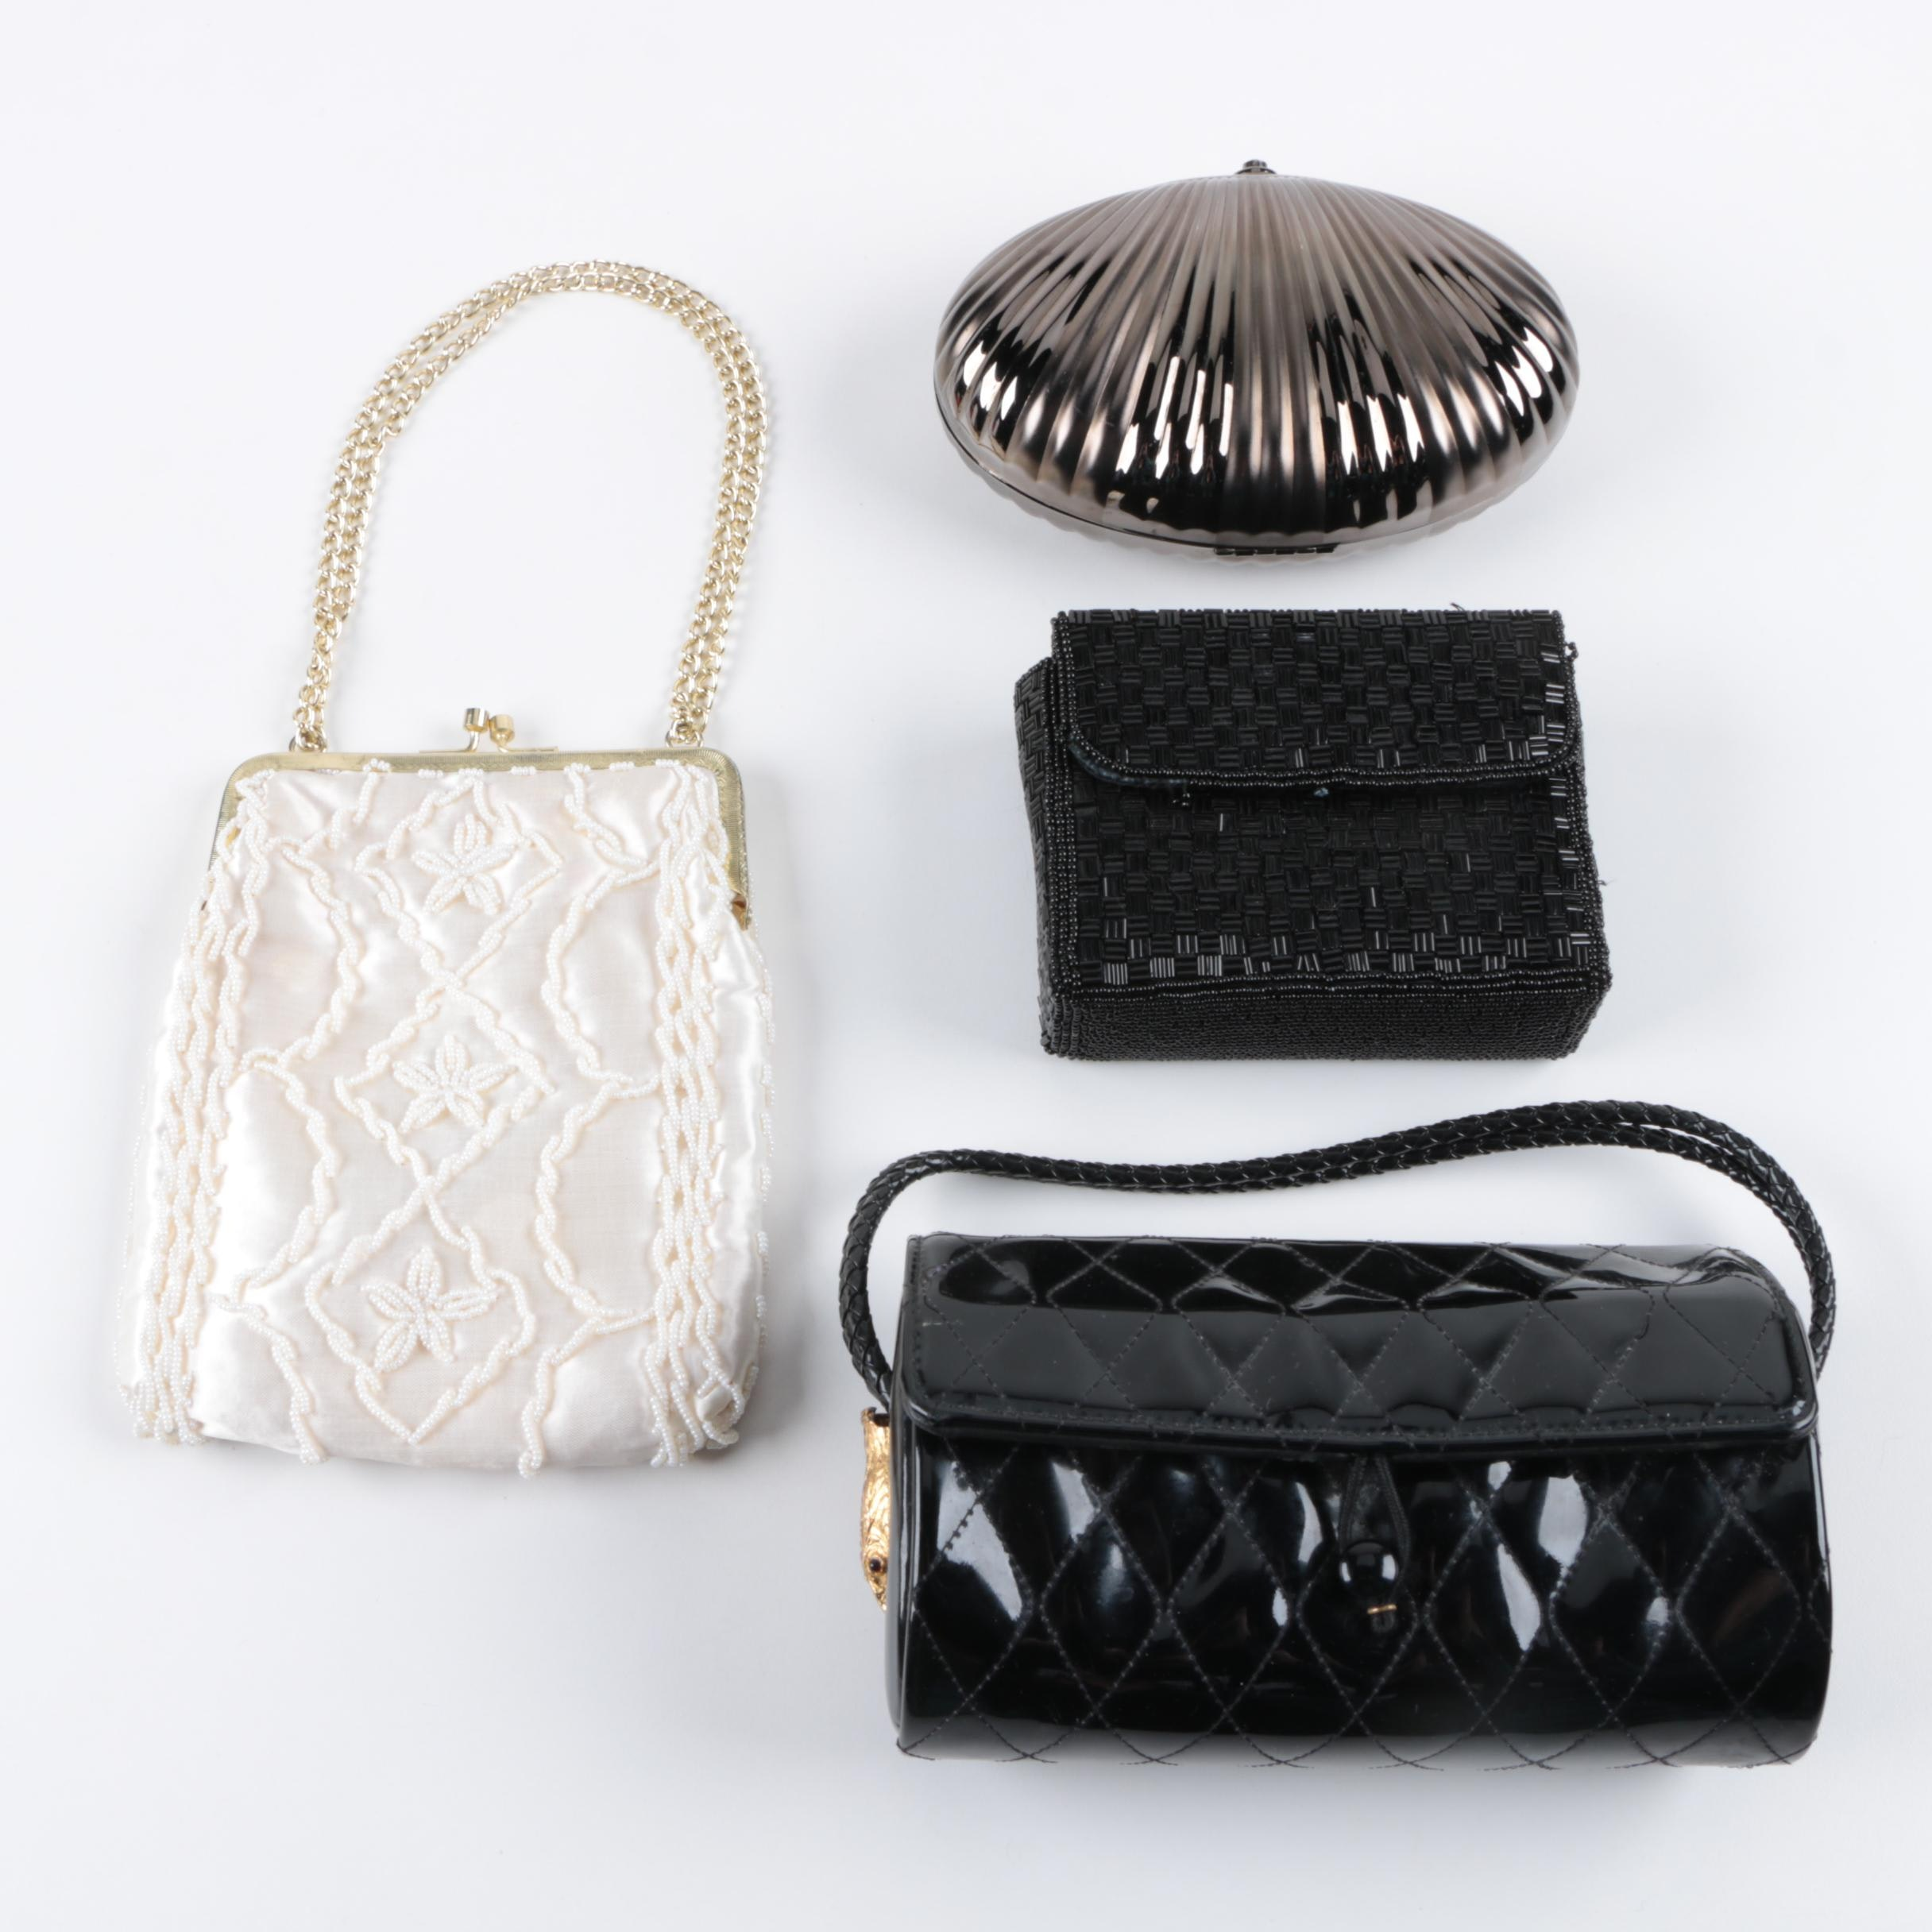 Evening Bags Including Beaded, Metal and Quilted Styles